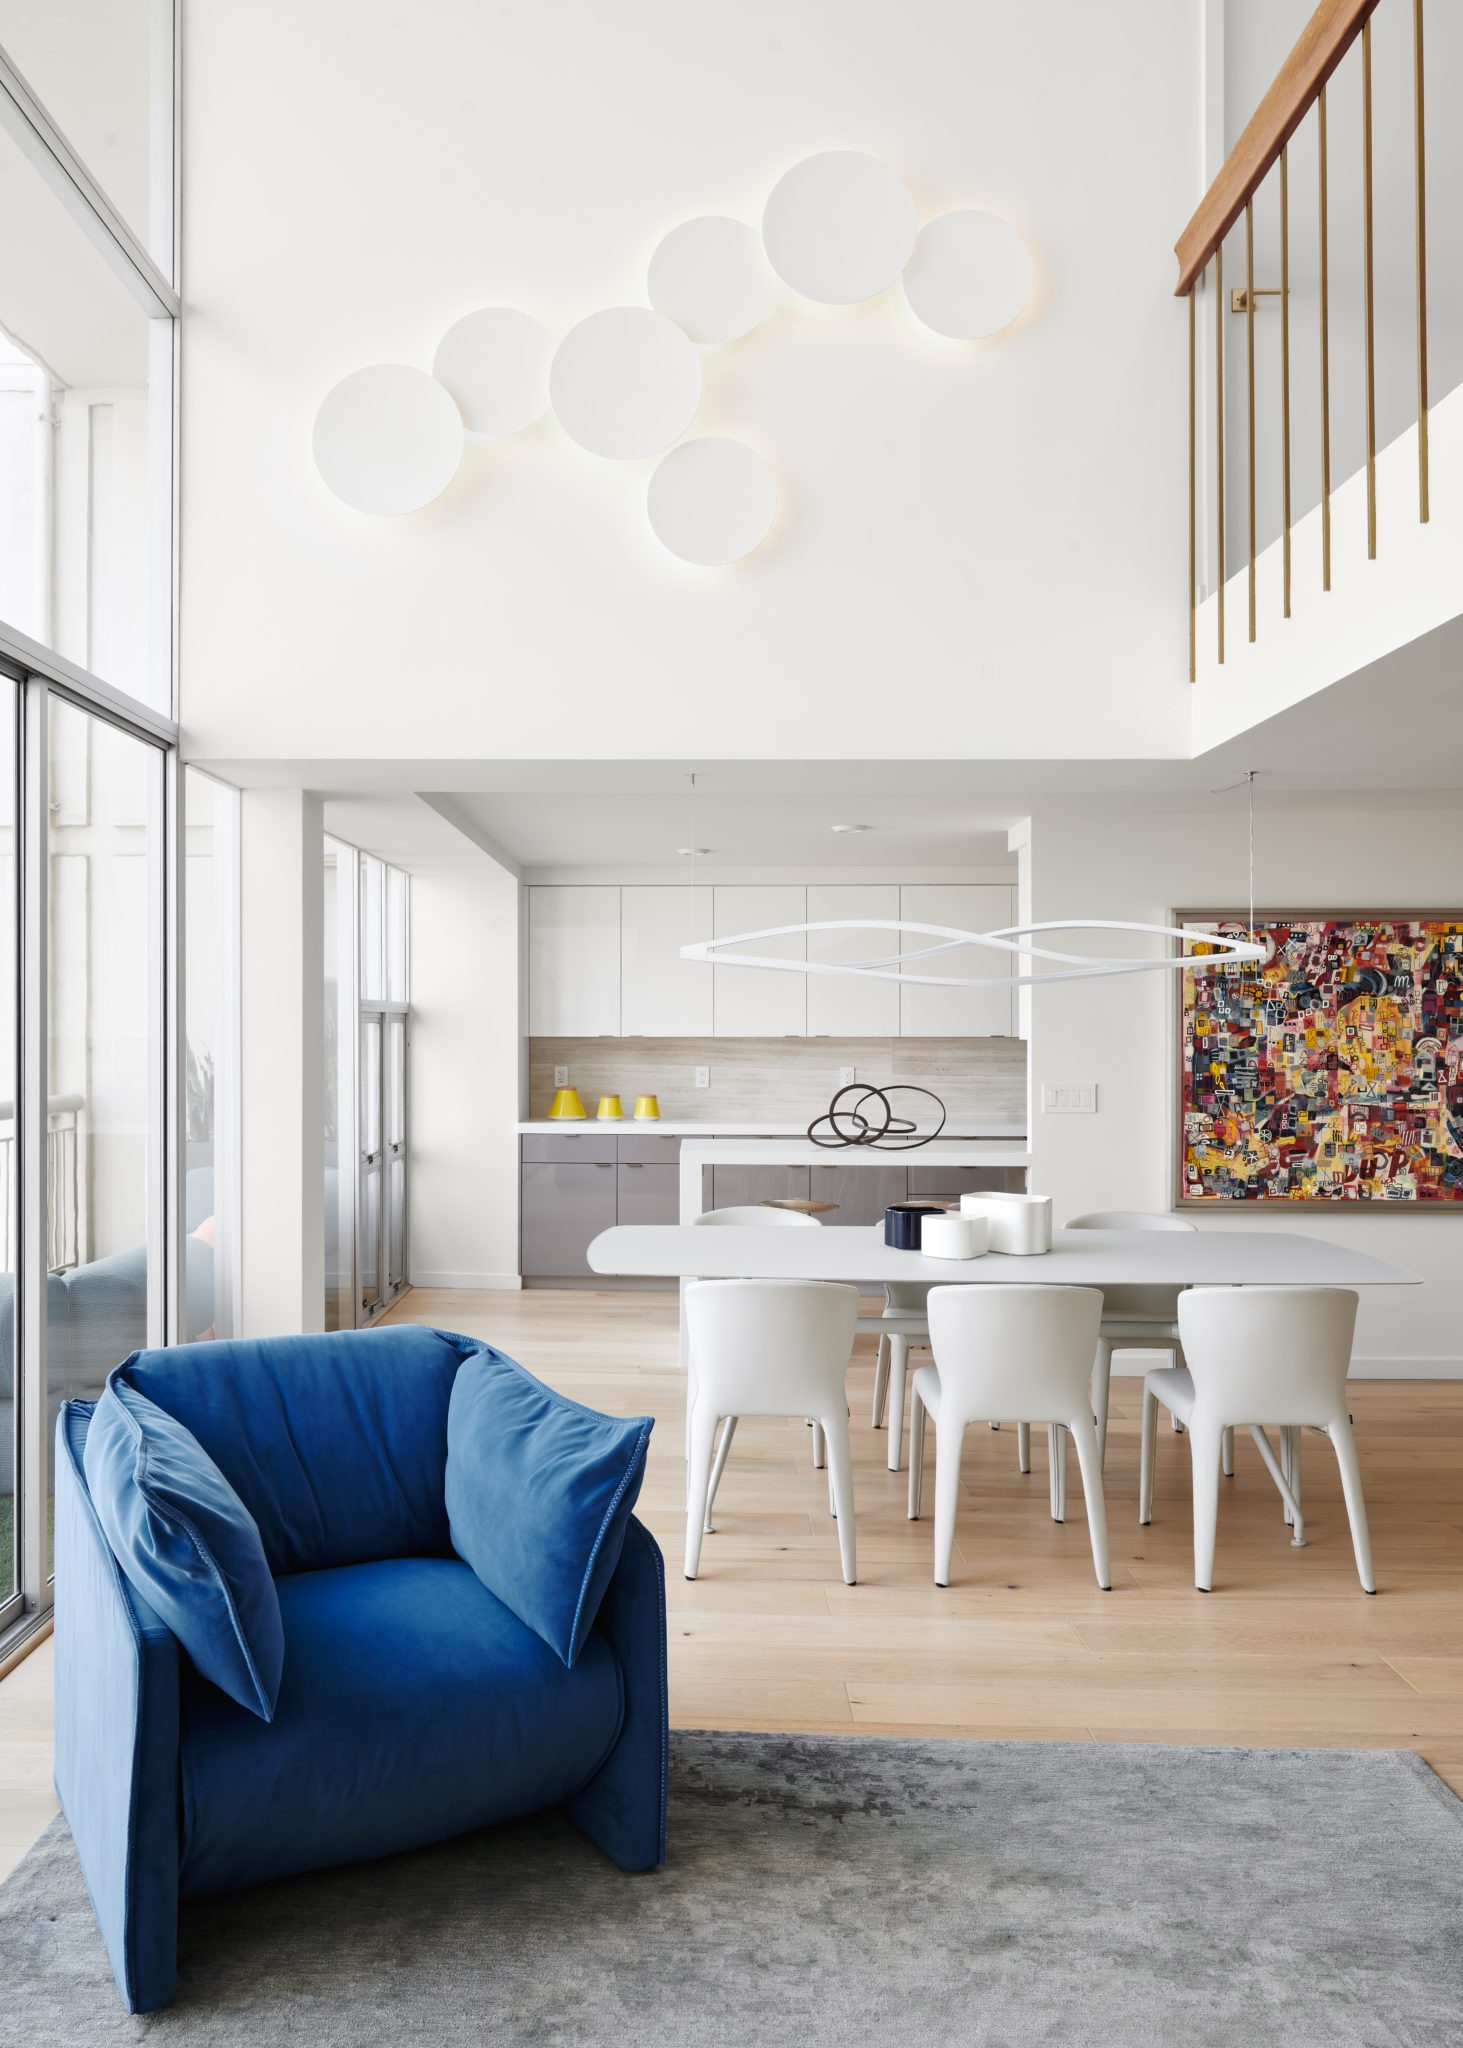 Here, a unique armchairfrom Poltrona Frau, upholstered in blue velvet,delivers subdued color. The sculptural sconce near the open landing is from Vibia, and the rug was custom-designed by Isolina Mallon Interiors and crafted by Scott Studio Group.